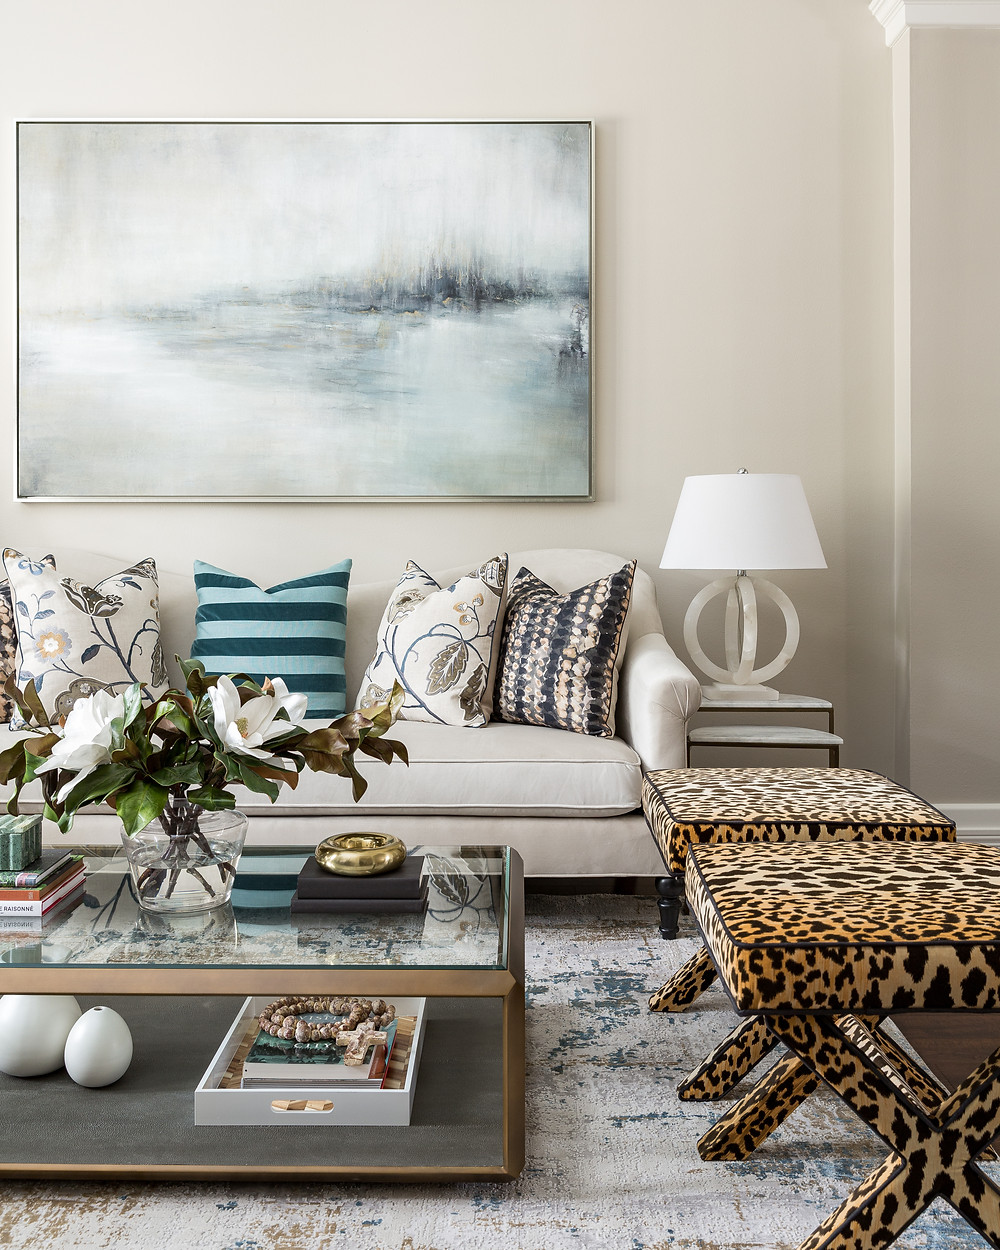 Formal Living Room With Large Scale Art, Cream Sofa, Elegant Custom Pillows, Alabaster Lamps, Glass Coffee Table, Cheetah Ottomans. Designed By Veronica Solomon. Photographed By Colleen Scott